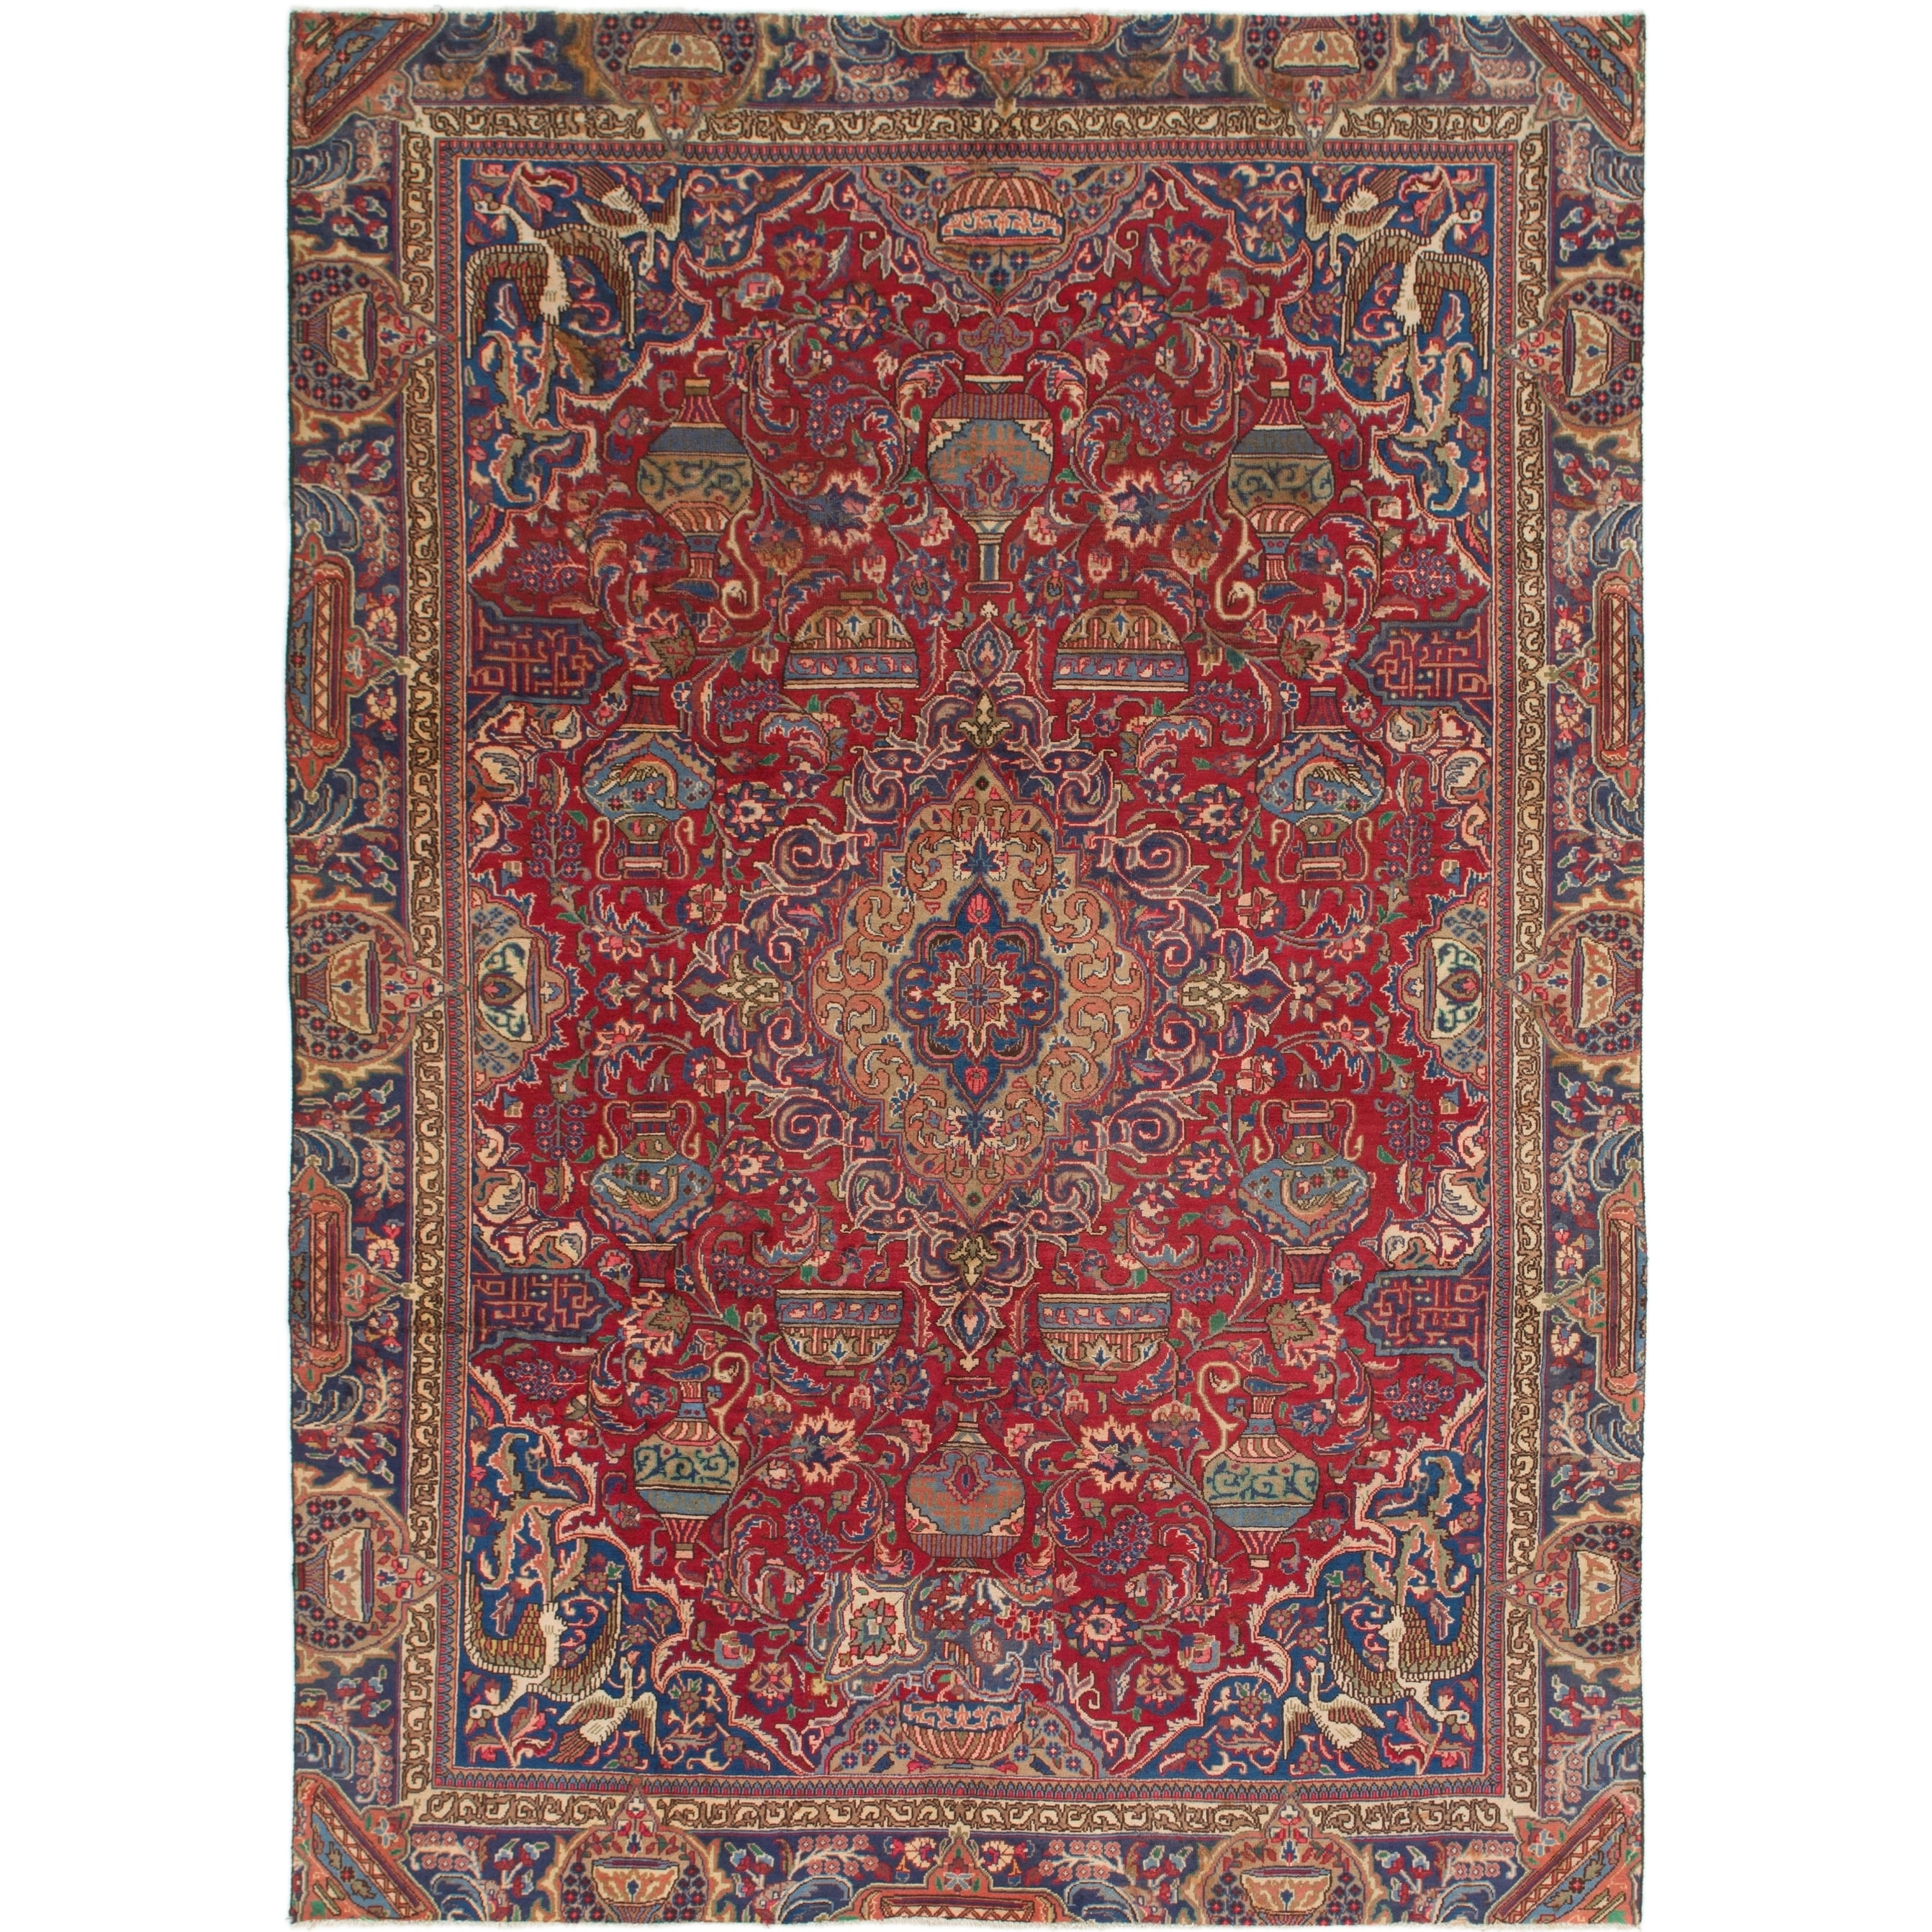 Hand Knotted Kashmar Semi Antique Wool Area Rug - 8 x 11 2 (Red - 8 x 11 2)